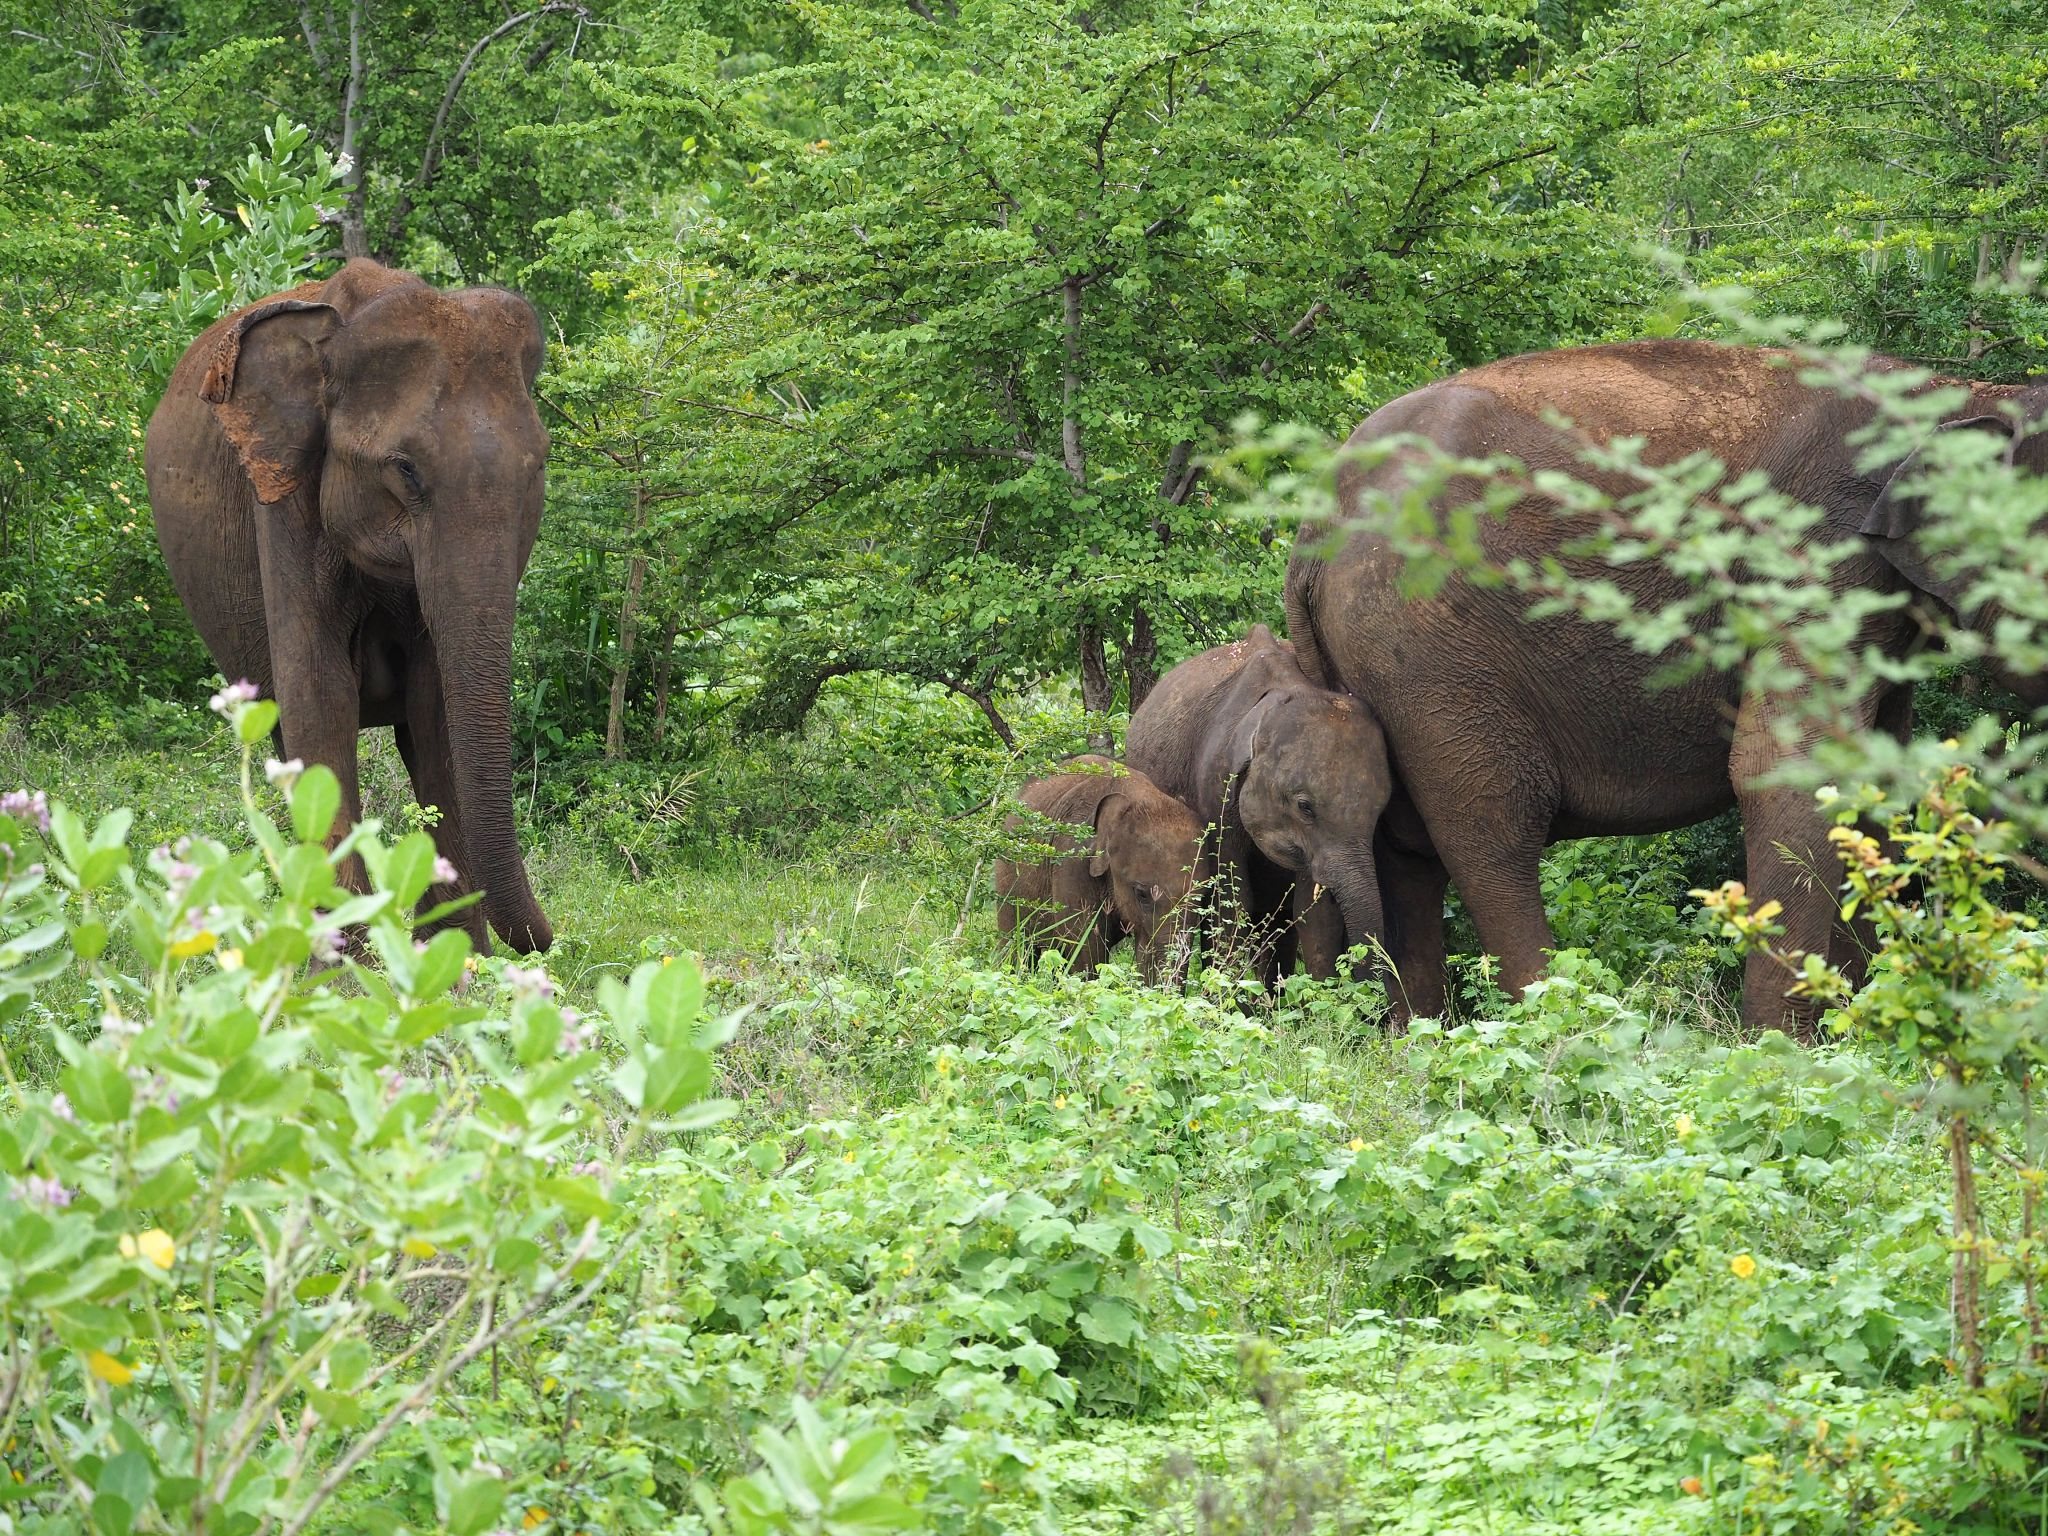 Elephant family in Udawalwe National Park